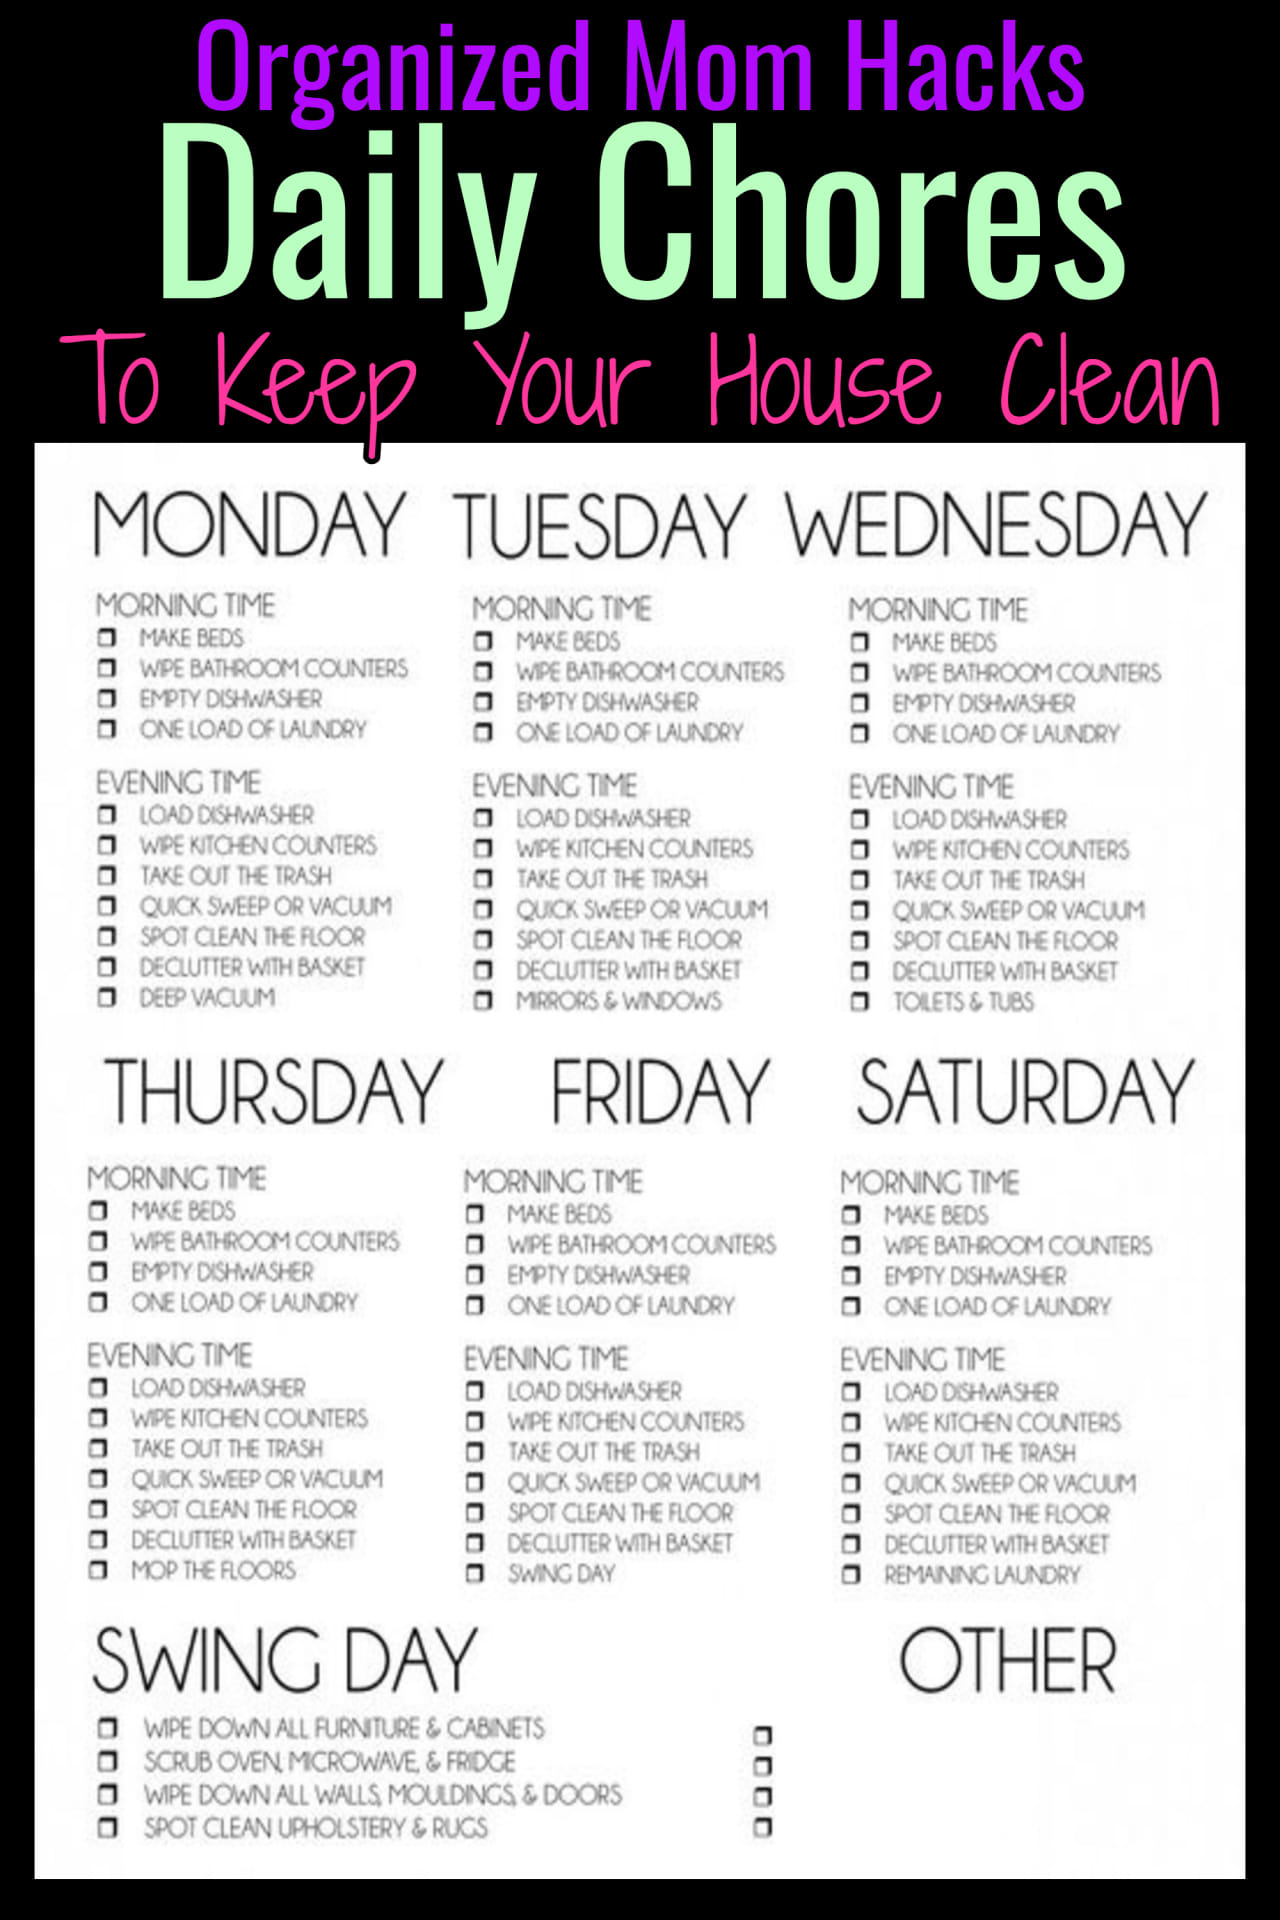 Organized mom hacks - daily chores to keep house clean - daily cleaning schedule for moms - both stay at home moms and working moms - printable cleaning checklist